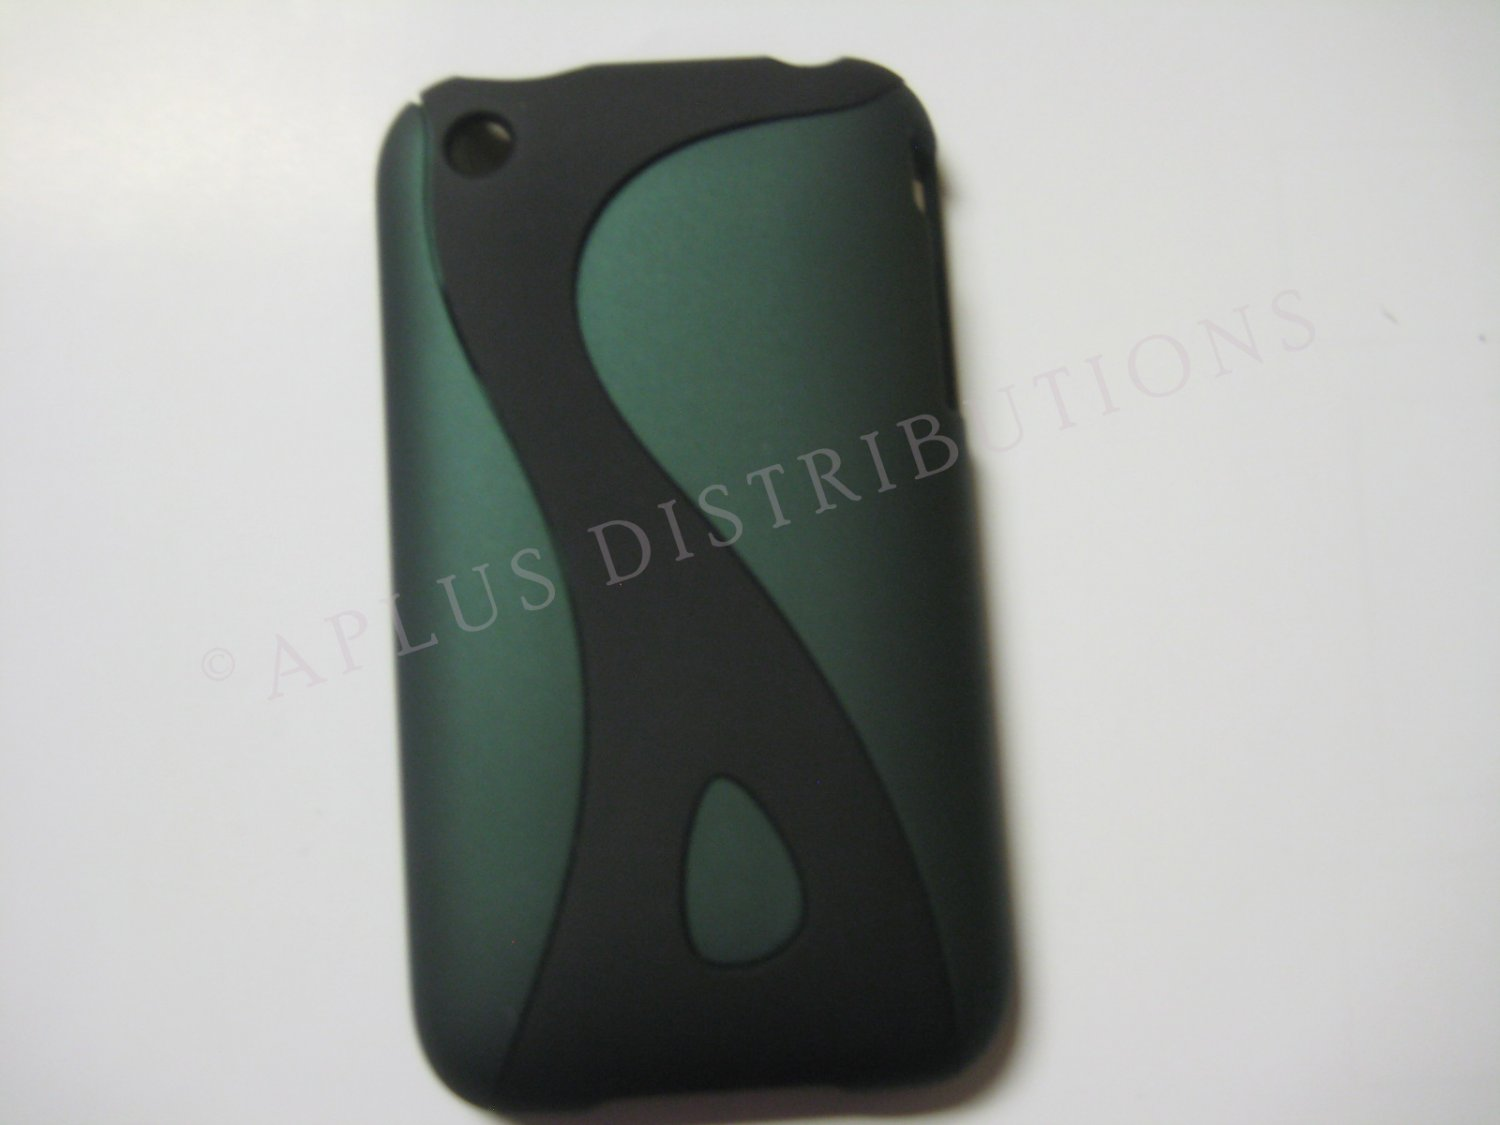 New Dark Green Rubberized Twist Design Hard Protective Cover For iPhone 3G 3GS - (0100)